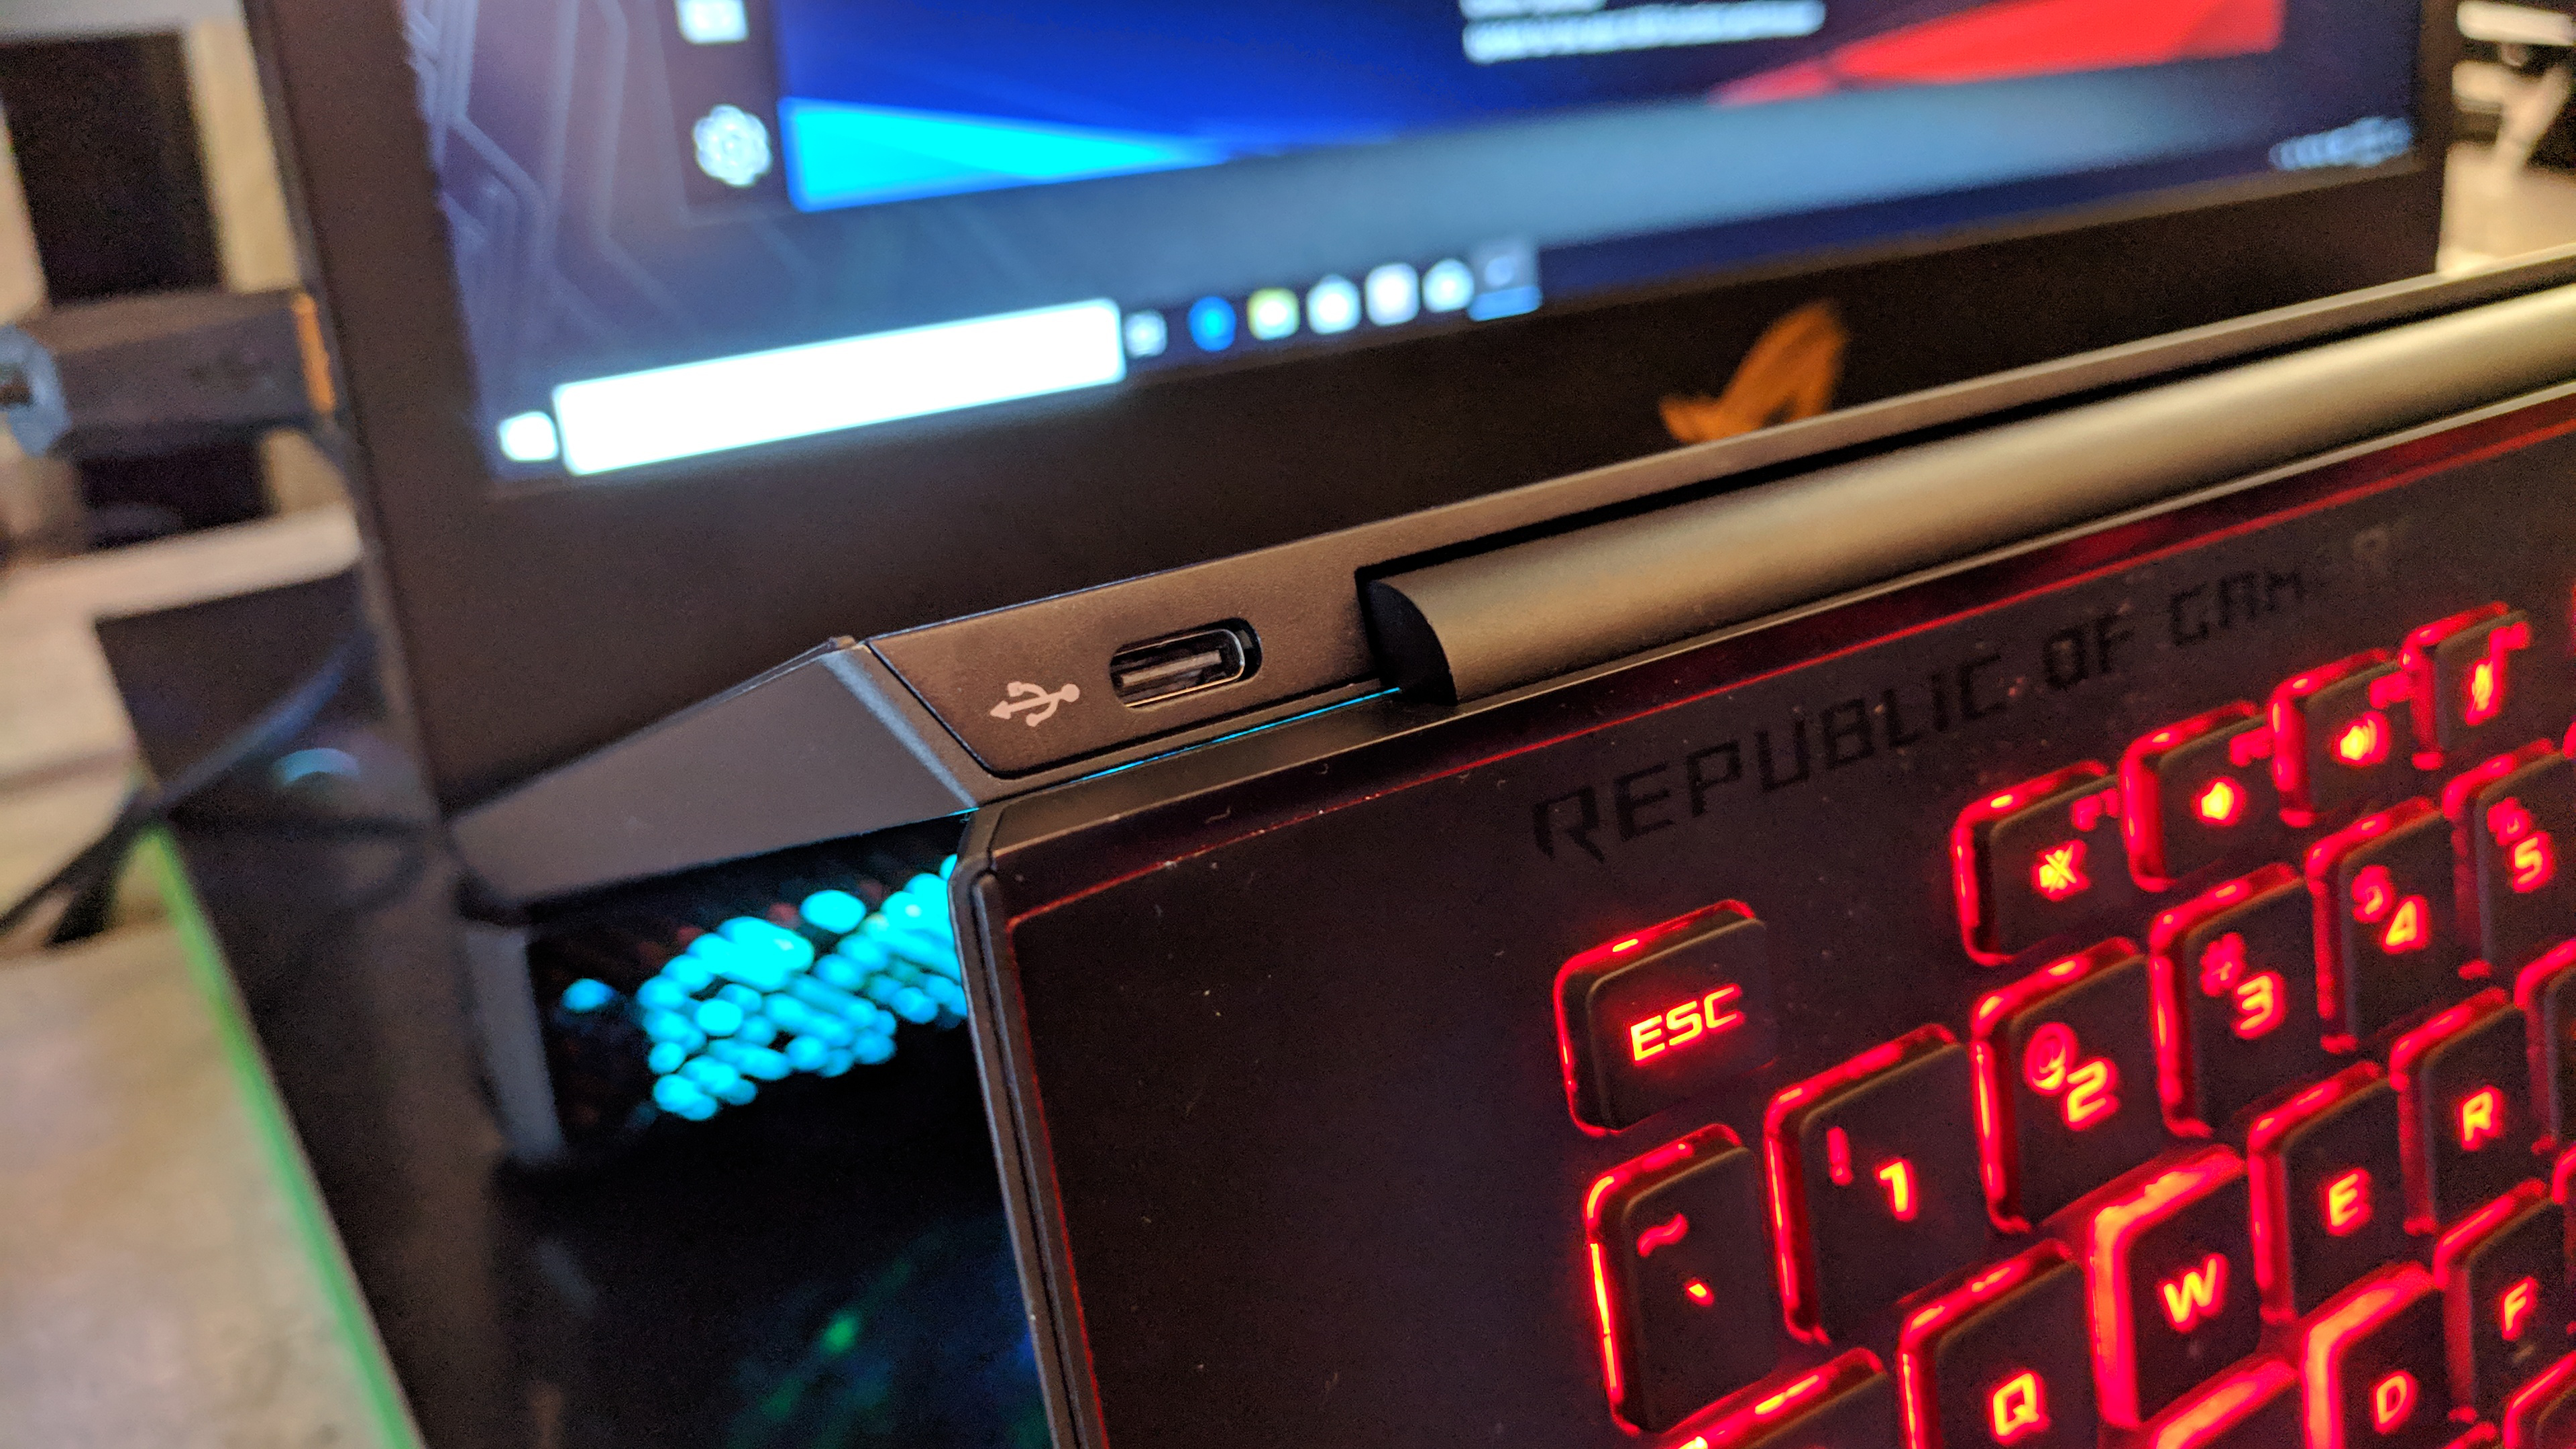 Asus Mothership review: hands on with Asus' preposterous gaming